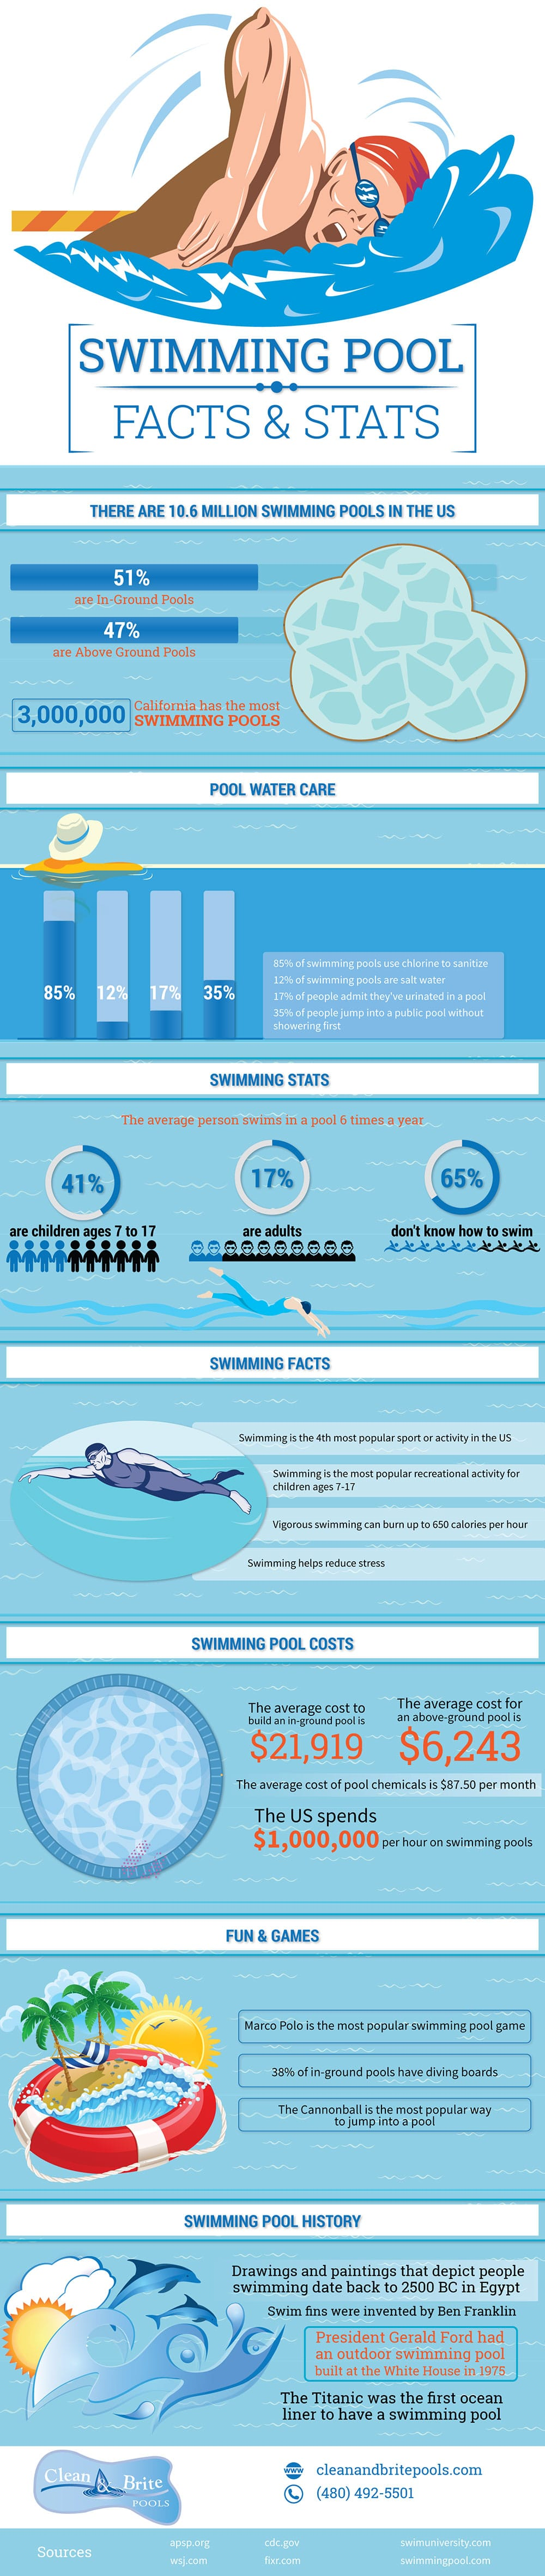 Swimming Pool Facts & Stats